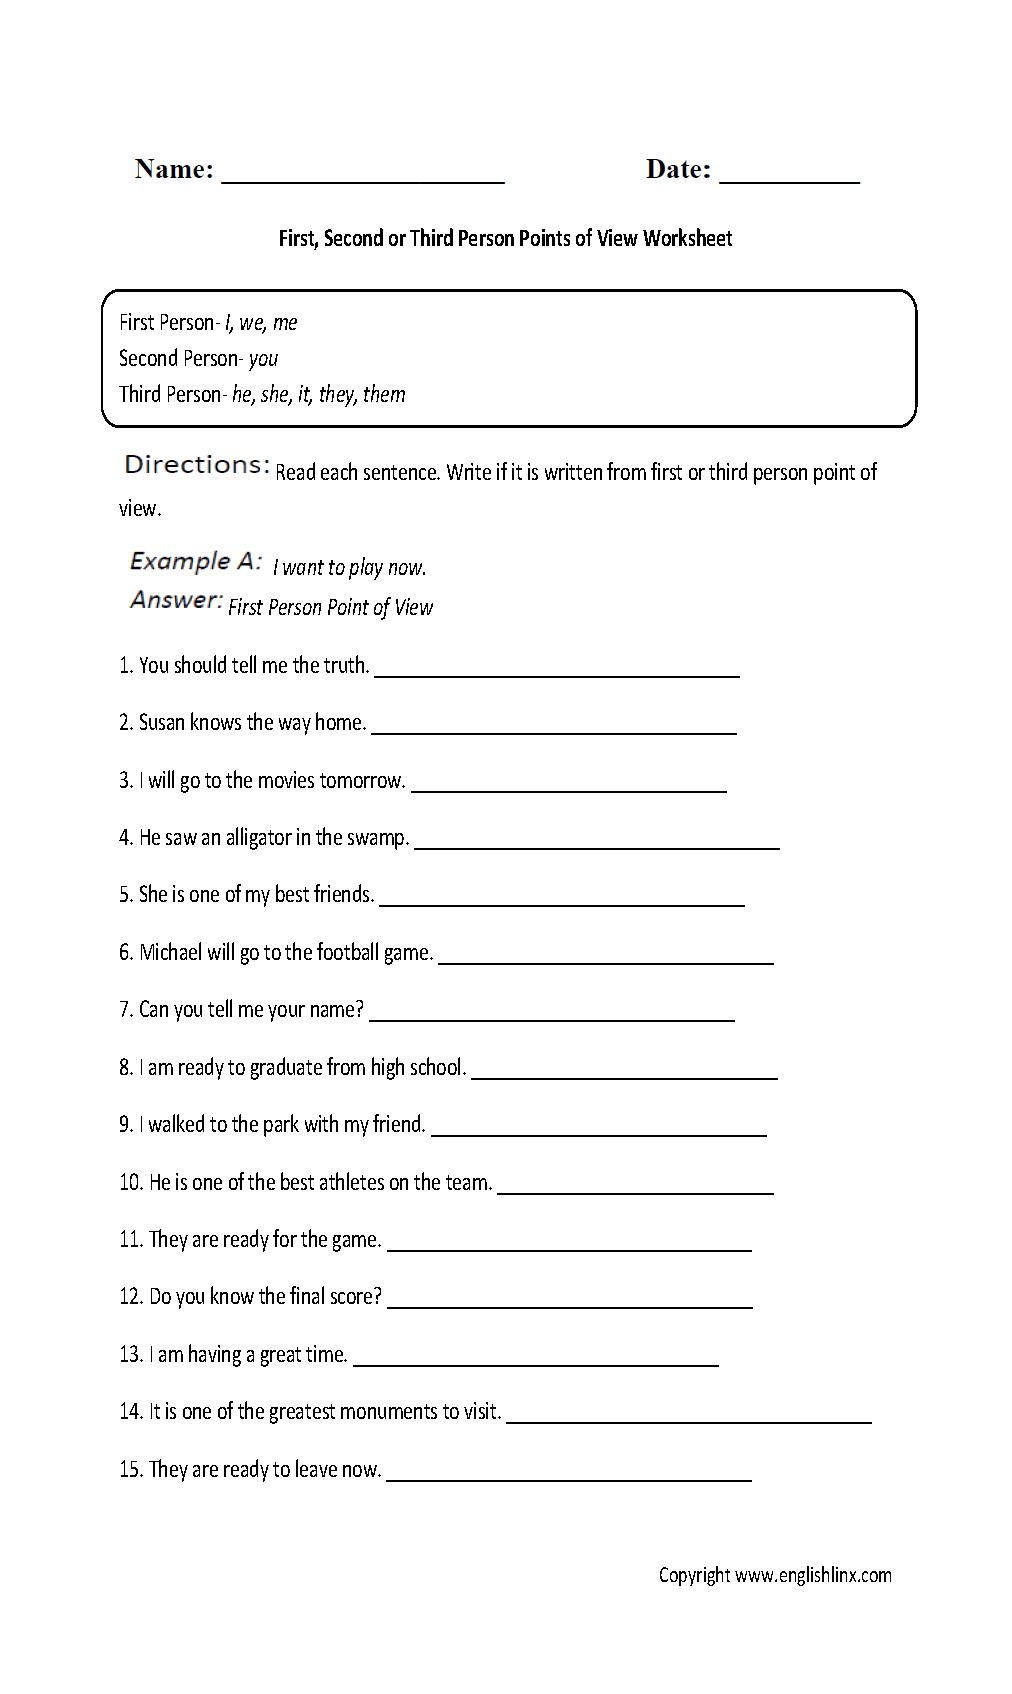 Proatmealus  Seductive Englishlinxcom  Point Of View Worksheets With Entrancing Point Of View Worksheet With Extraordinary Surface Area Cube Worksheet Also Nd Grade Suffix Worksheets In Addition Decimal Rounding Worksheet And Affix Worksheets As Well As Free Printable Money Worksheets For Nd Grade Additionally Center Of Gravity Worksheet From Englishlinxcom With Proatmealus  Entrancing Englishlinxcom  Point Of View Worksheets With Extraordinary Point Of View Worksheet And Seductive Surface Area Cube Worksheet Also Nd Grade Suffix Worksheets In Addition Decimal Rounding Worksheet From Englishlinxcom